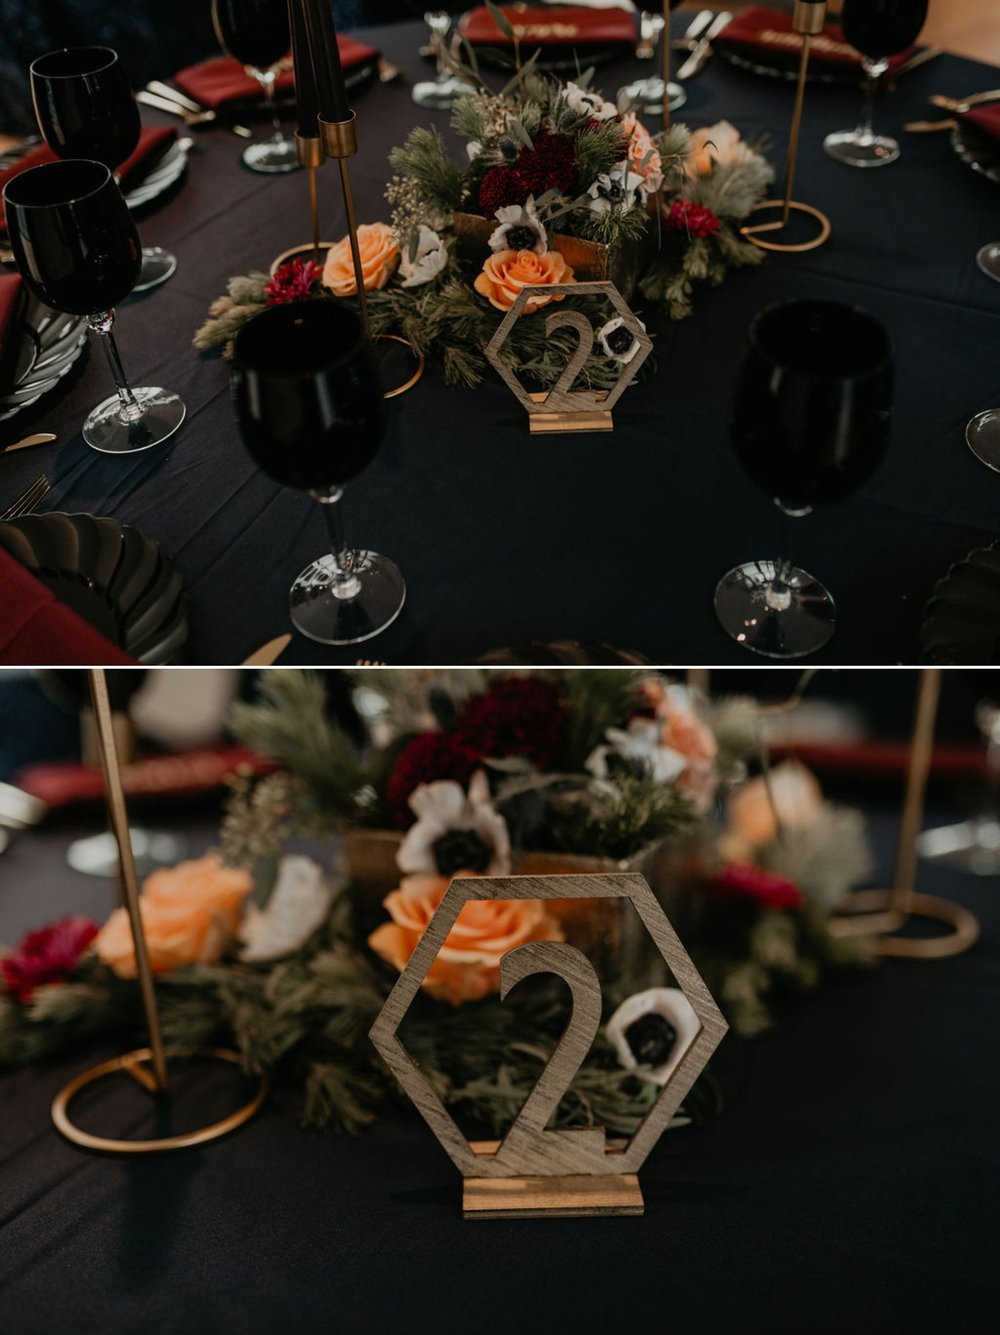 dark wedding table decorations - Navy tablecloth with burgundy napkins and gold laser cut name place cards, gold silverwear and black plates and black wine glasses by ce rental - dark flowers centerpiece - gold table number - gold candle stick holder with black candles - Matt Smarsh and Johanna Dye - Raleigh North Carolina Urban Downtown Wedding at the Glass Box at 230